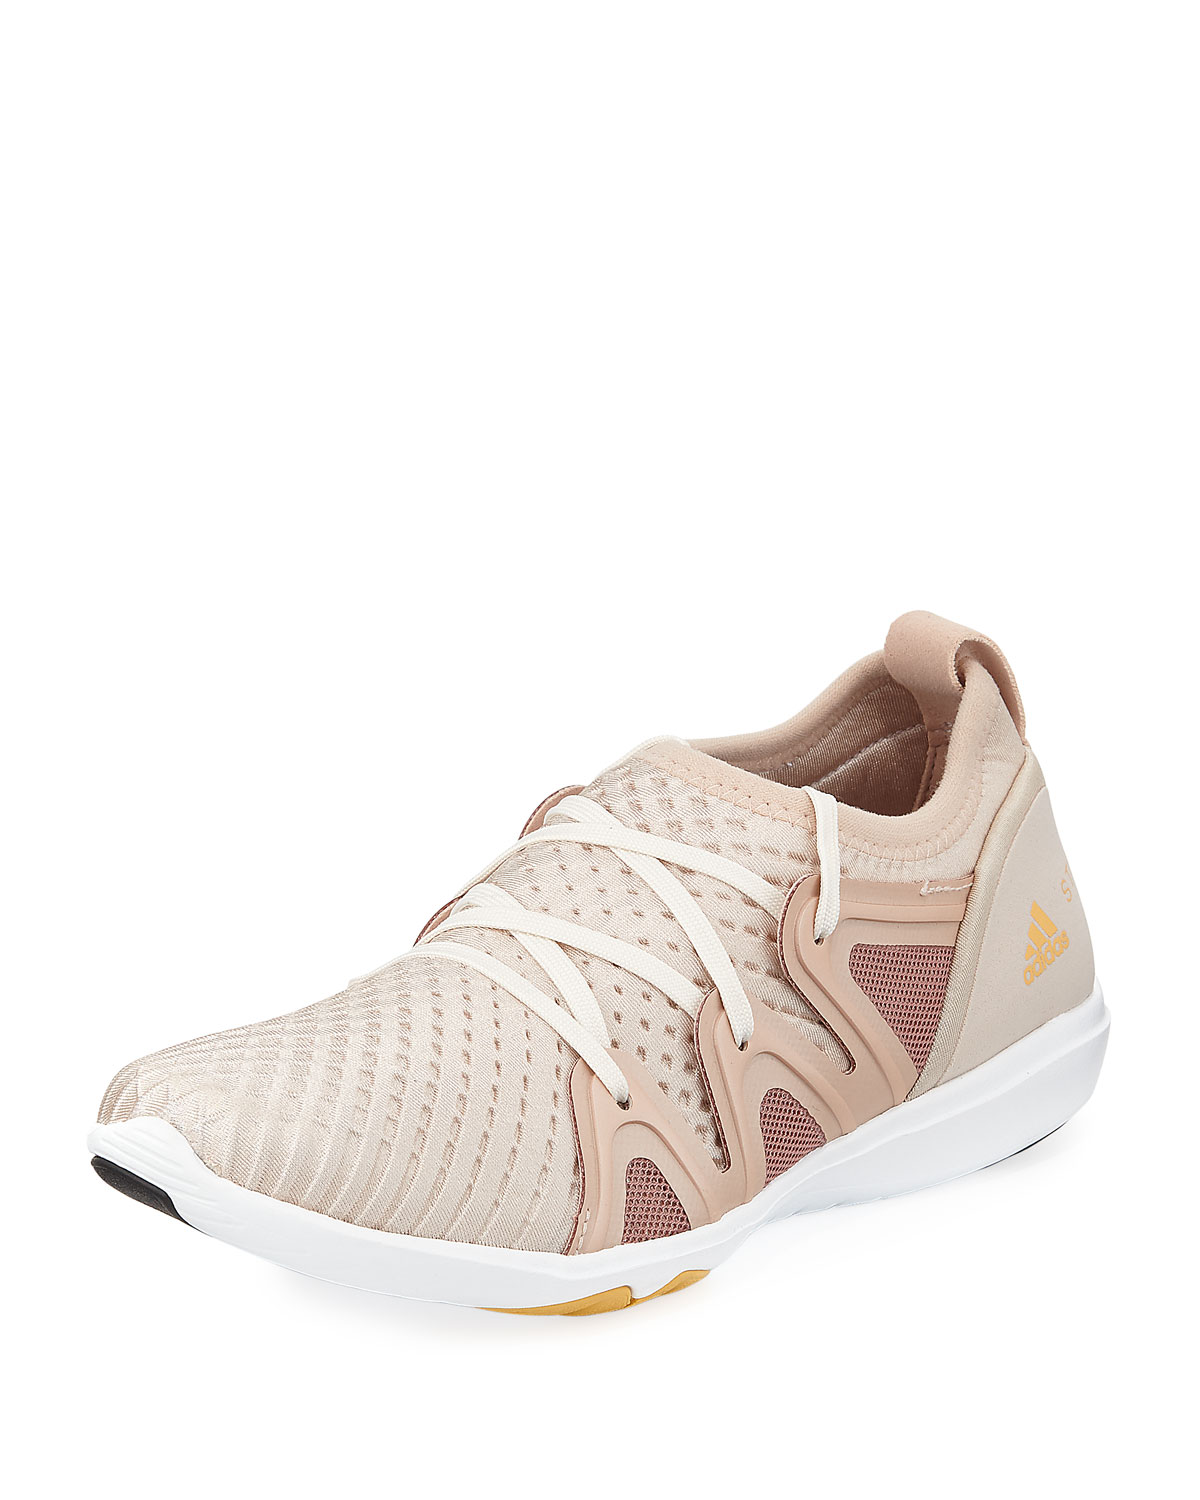 best sneakers 22718 d5197 adidas by Stella McCartney CrazyMove Pro Mid-Top Fabric Trainer Sneakers,  Rose